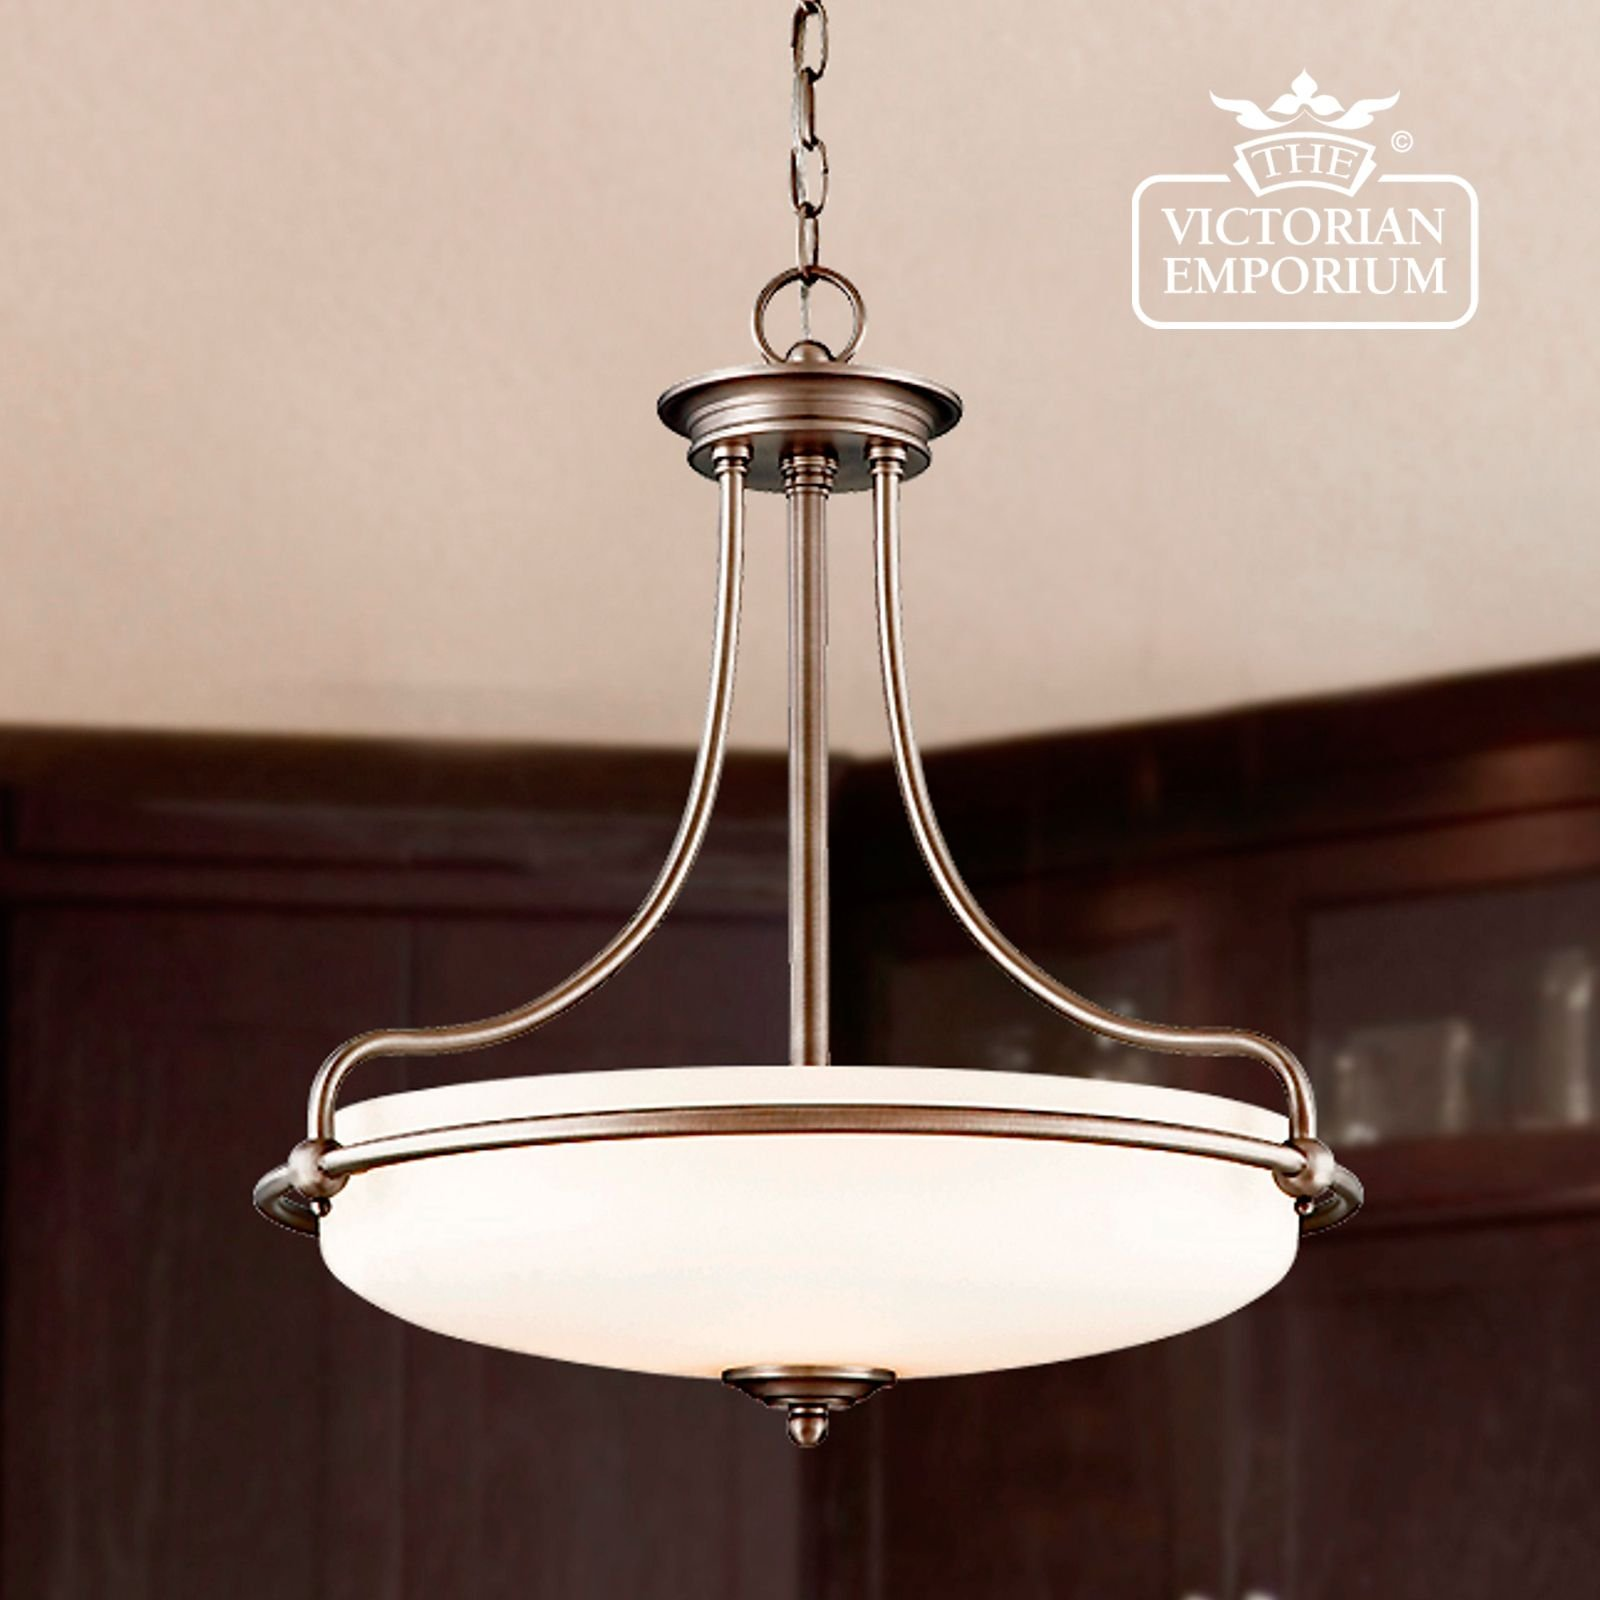 simple and elegant ceiling light with chain interior